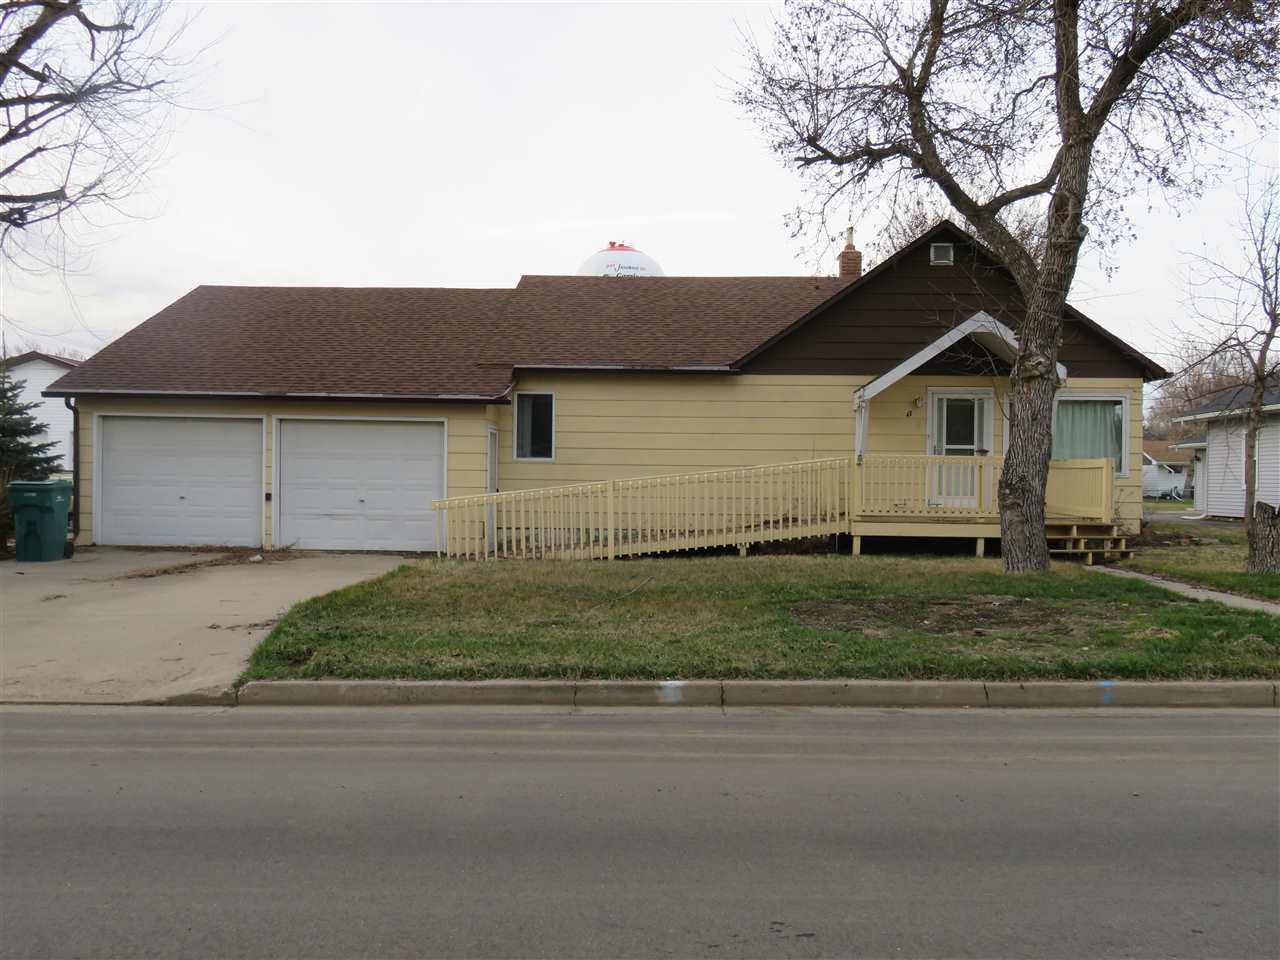 47 3RD AVE NW, Garrison, ND 58540